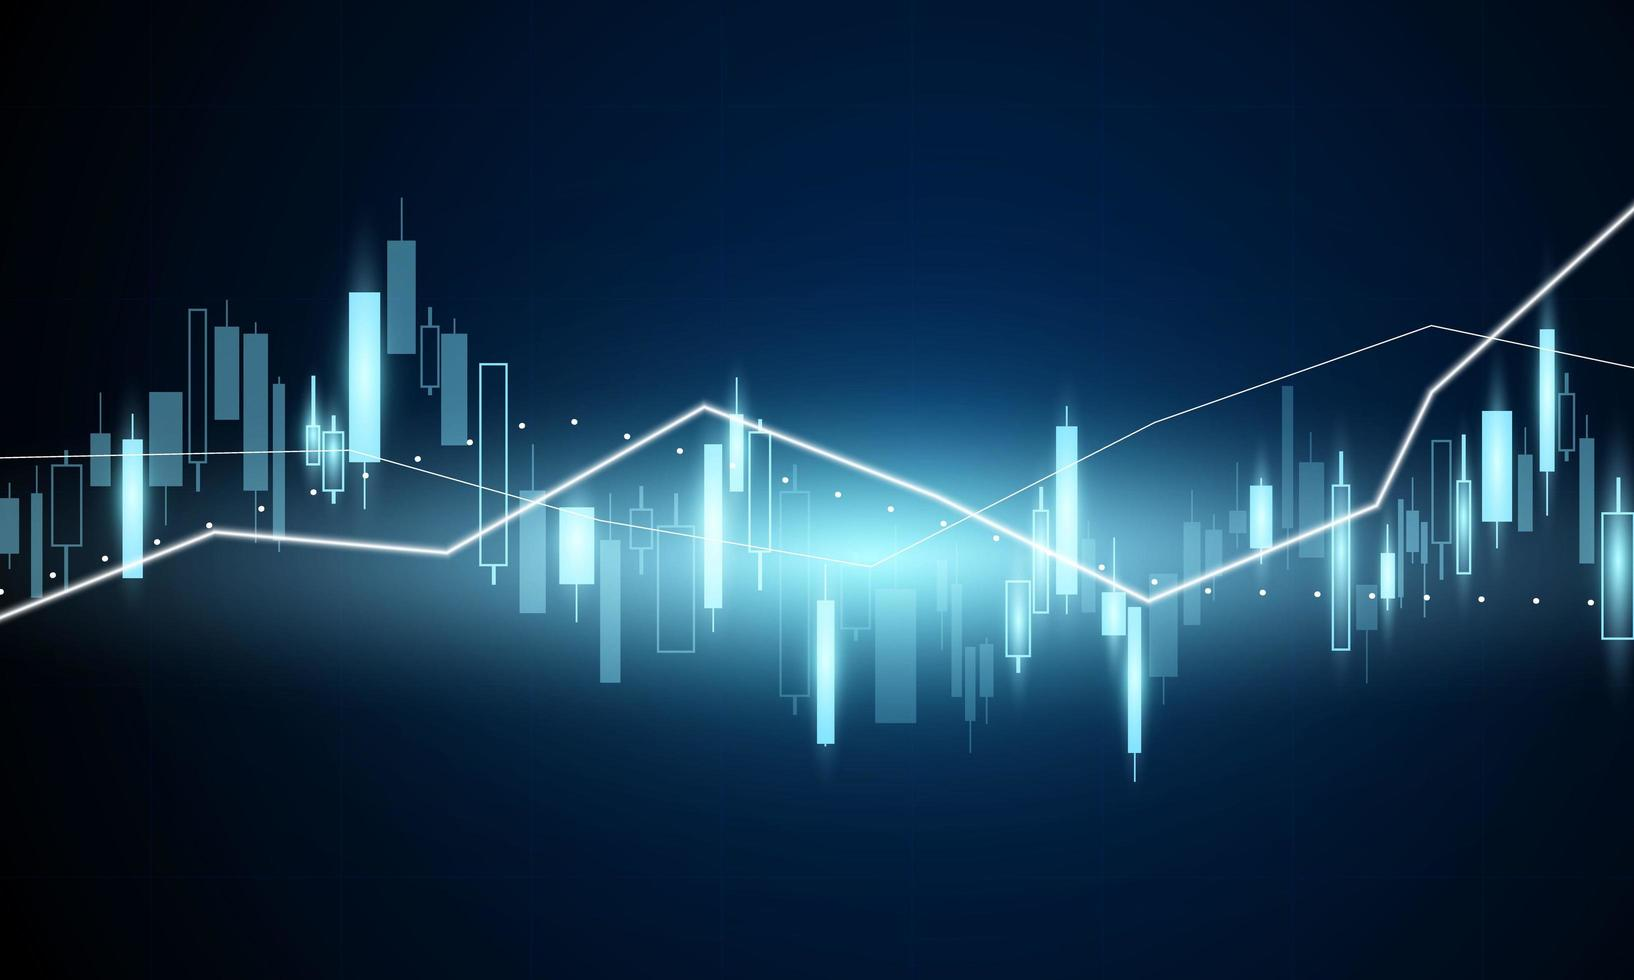 Stock market graph for financial business vector